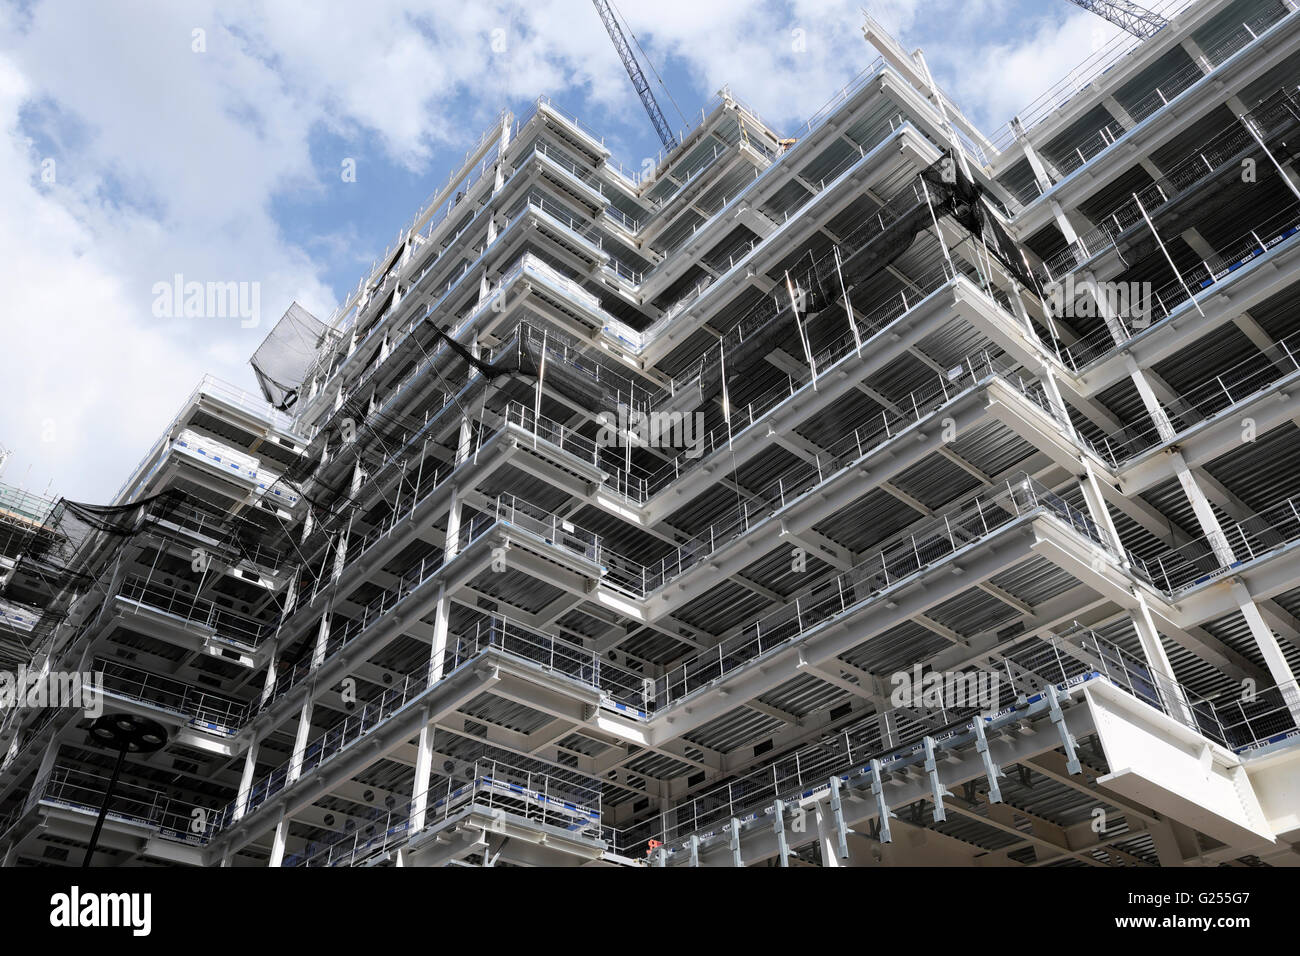 London Wall Place building under construction 2016  London UK  KATHY DEWITT - Stock Image